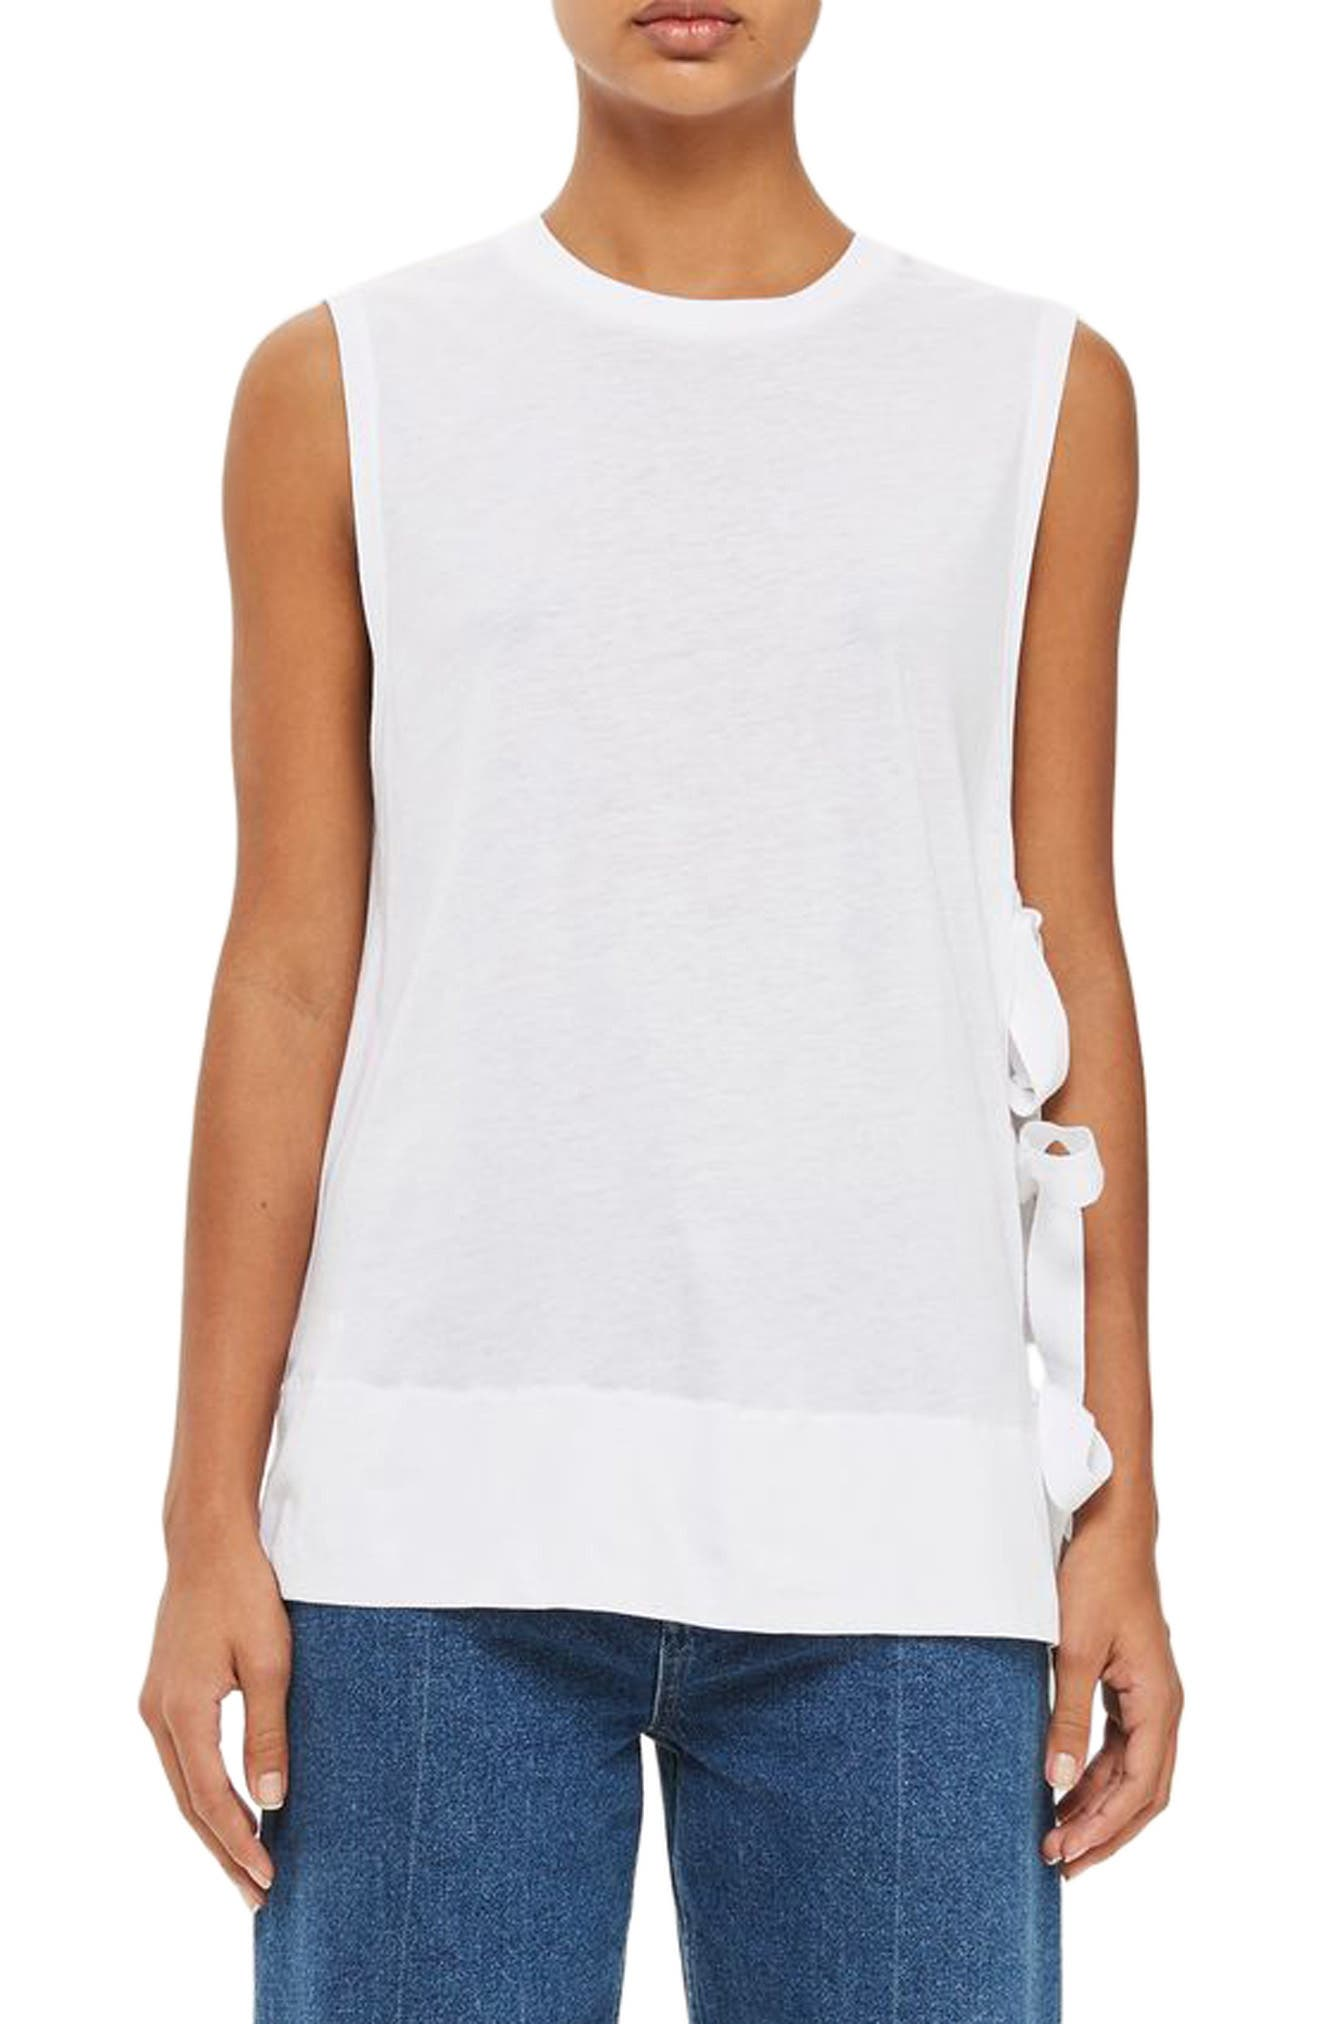 Topshop Boutique Tie Side Tank